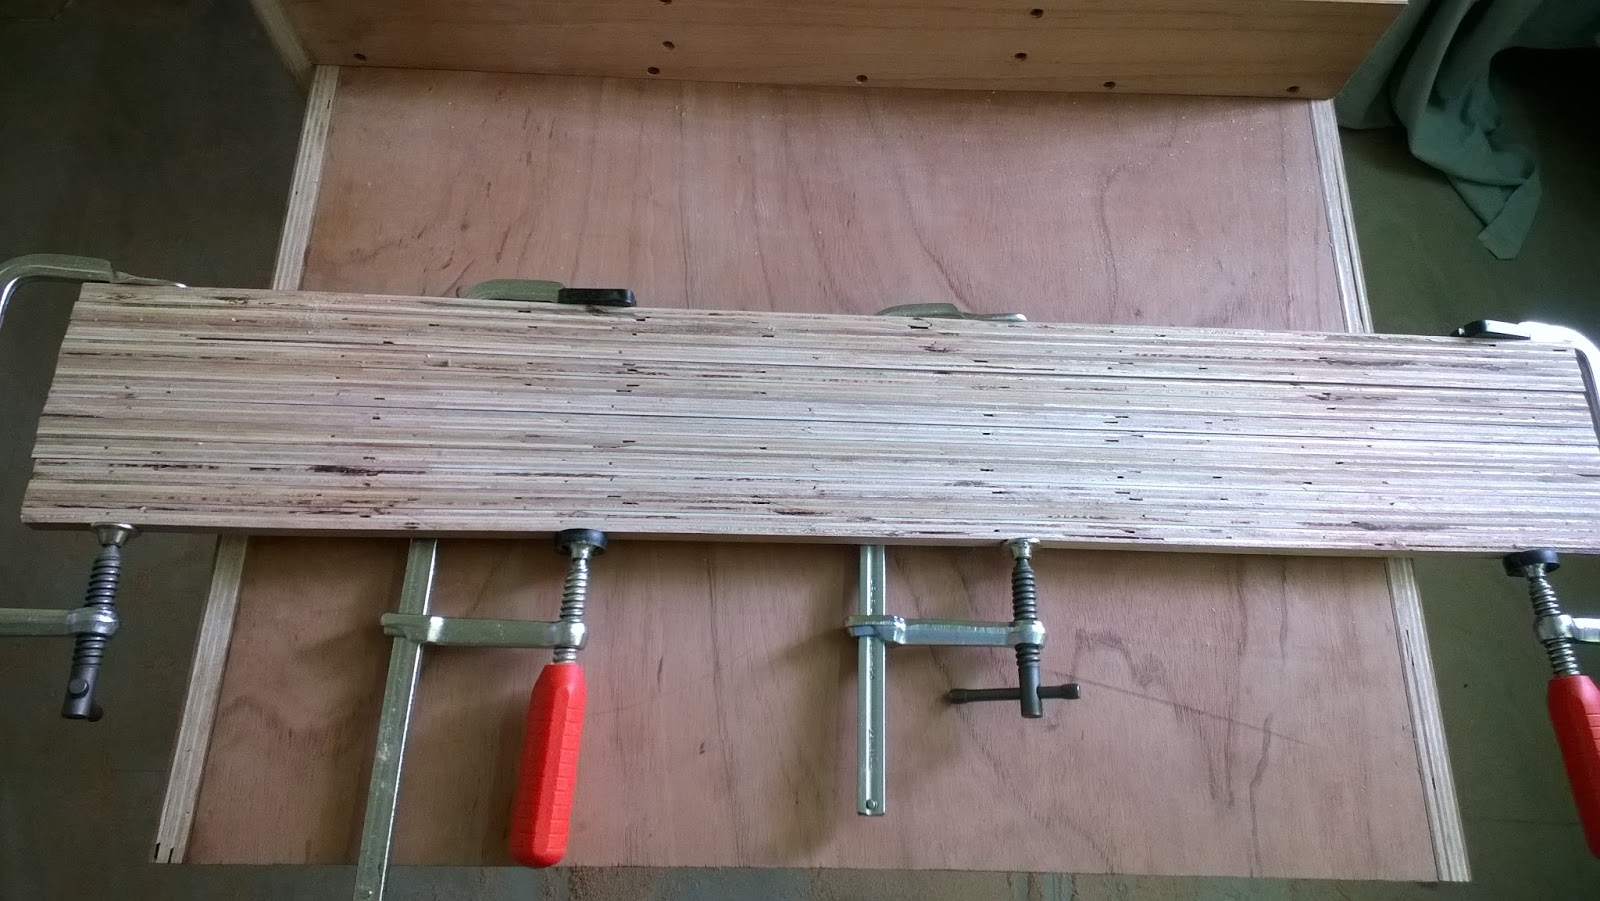 how to cut a hole in plywood